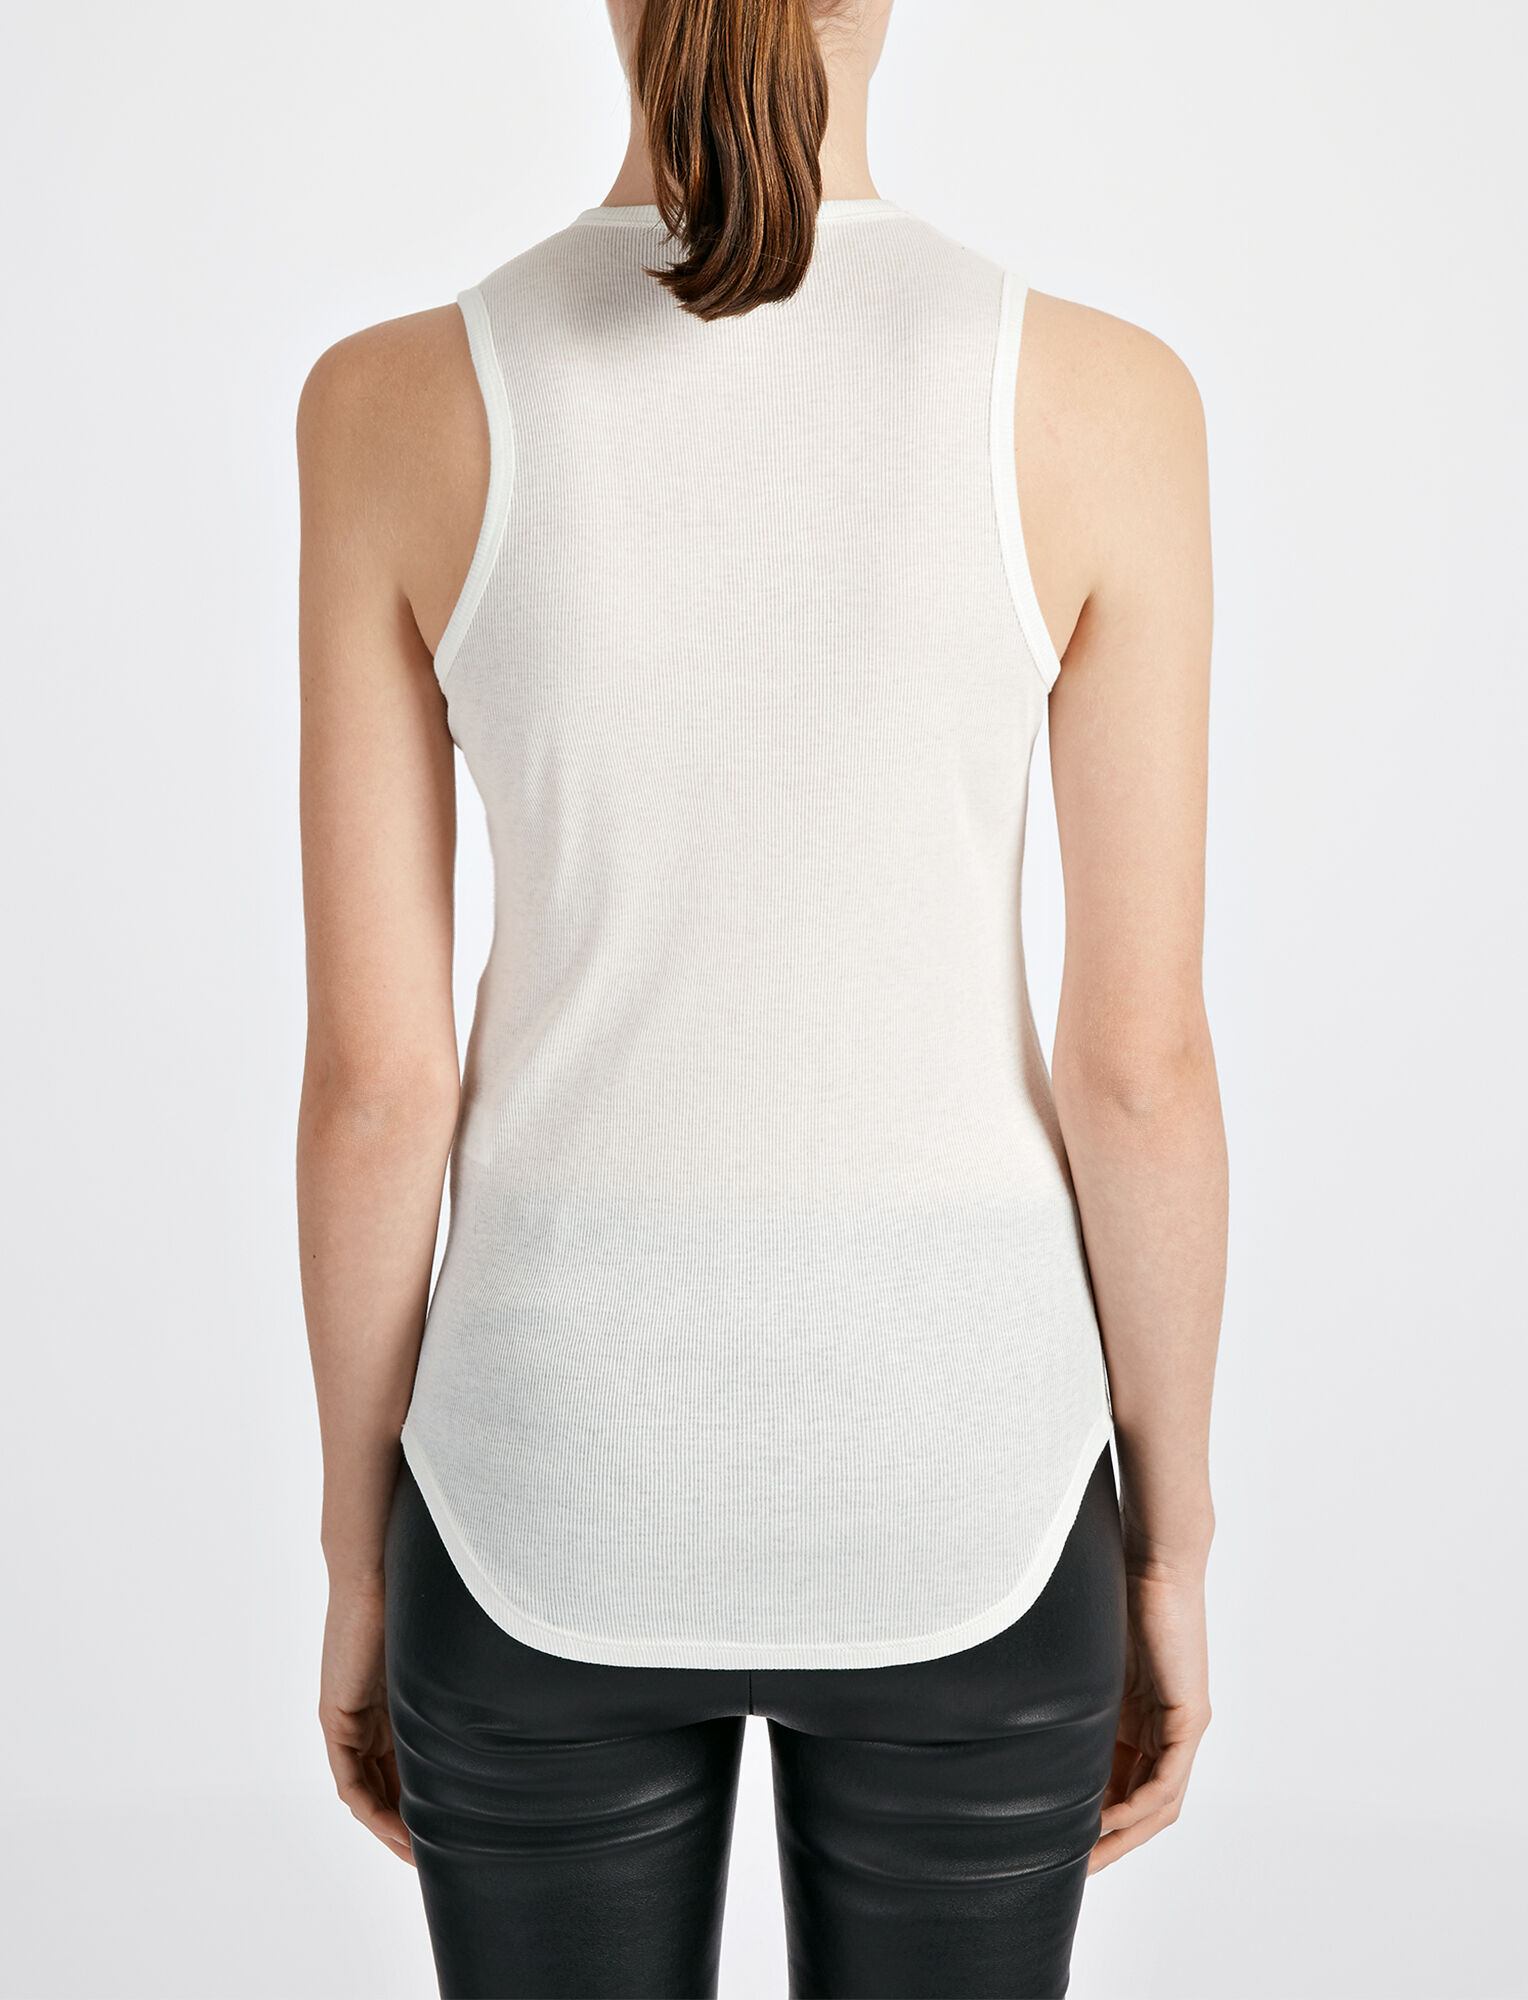 Joseph, Cotton Cashmere Rib Tank, in ECRU